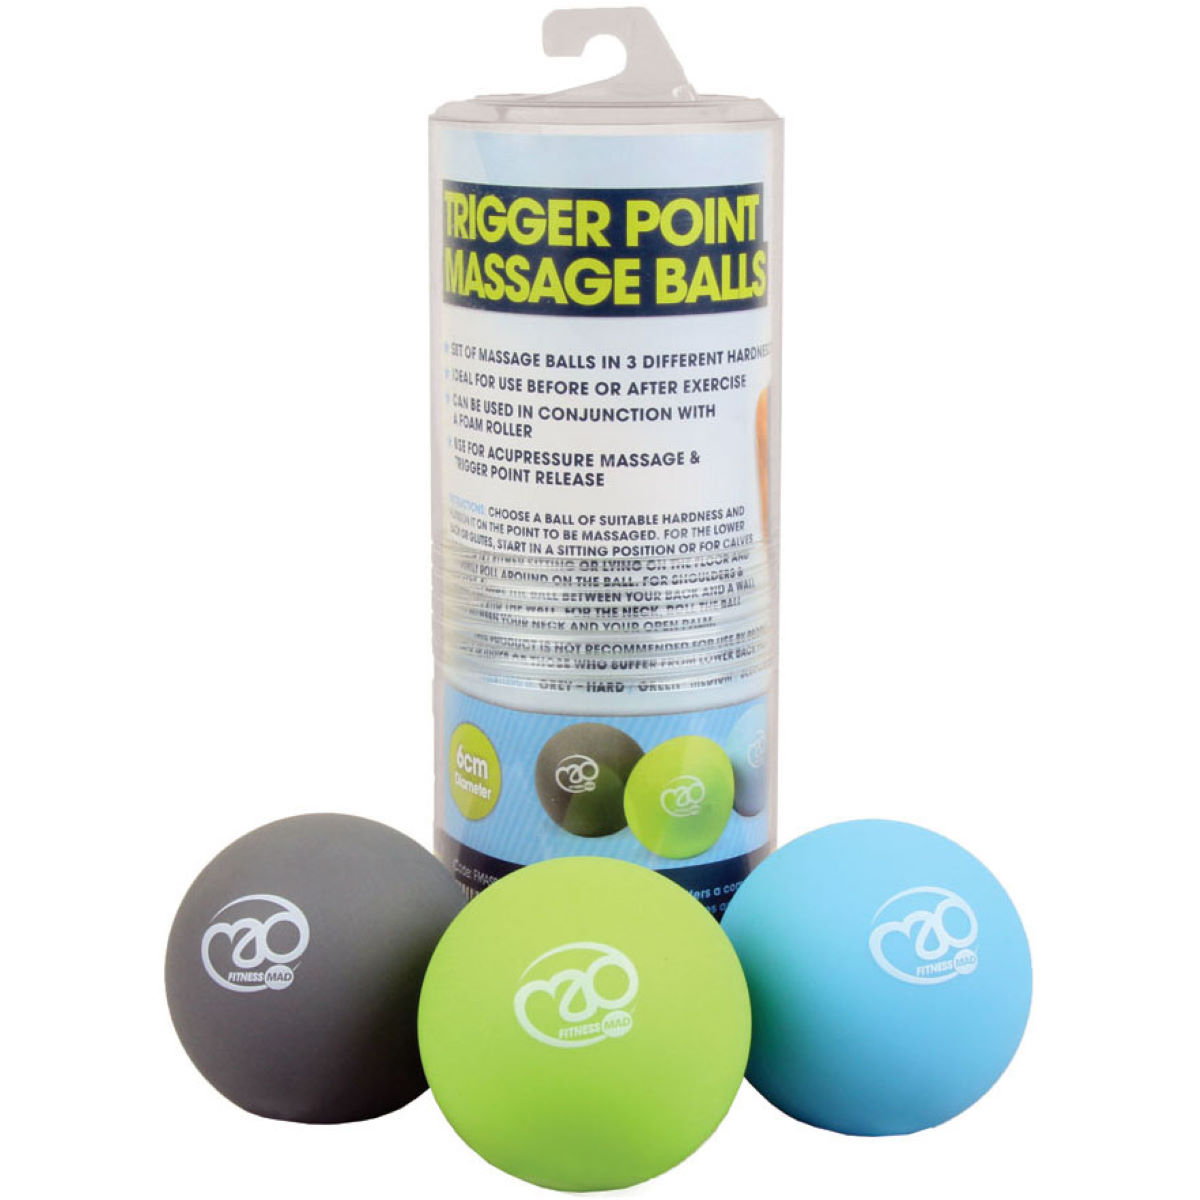 Fitness-mad Trigger Point Massage Ball Set - One Size Neutral